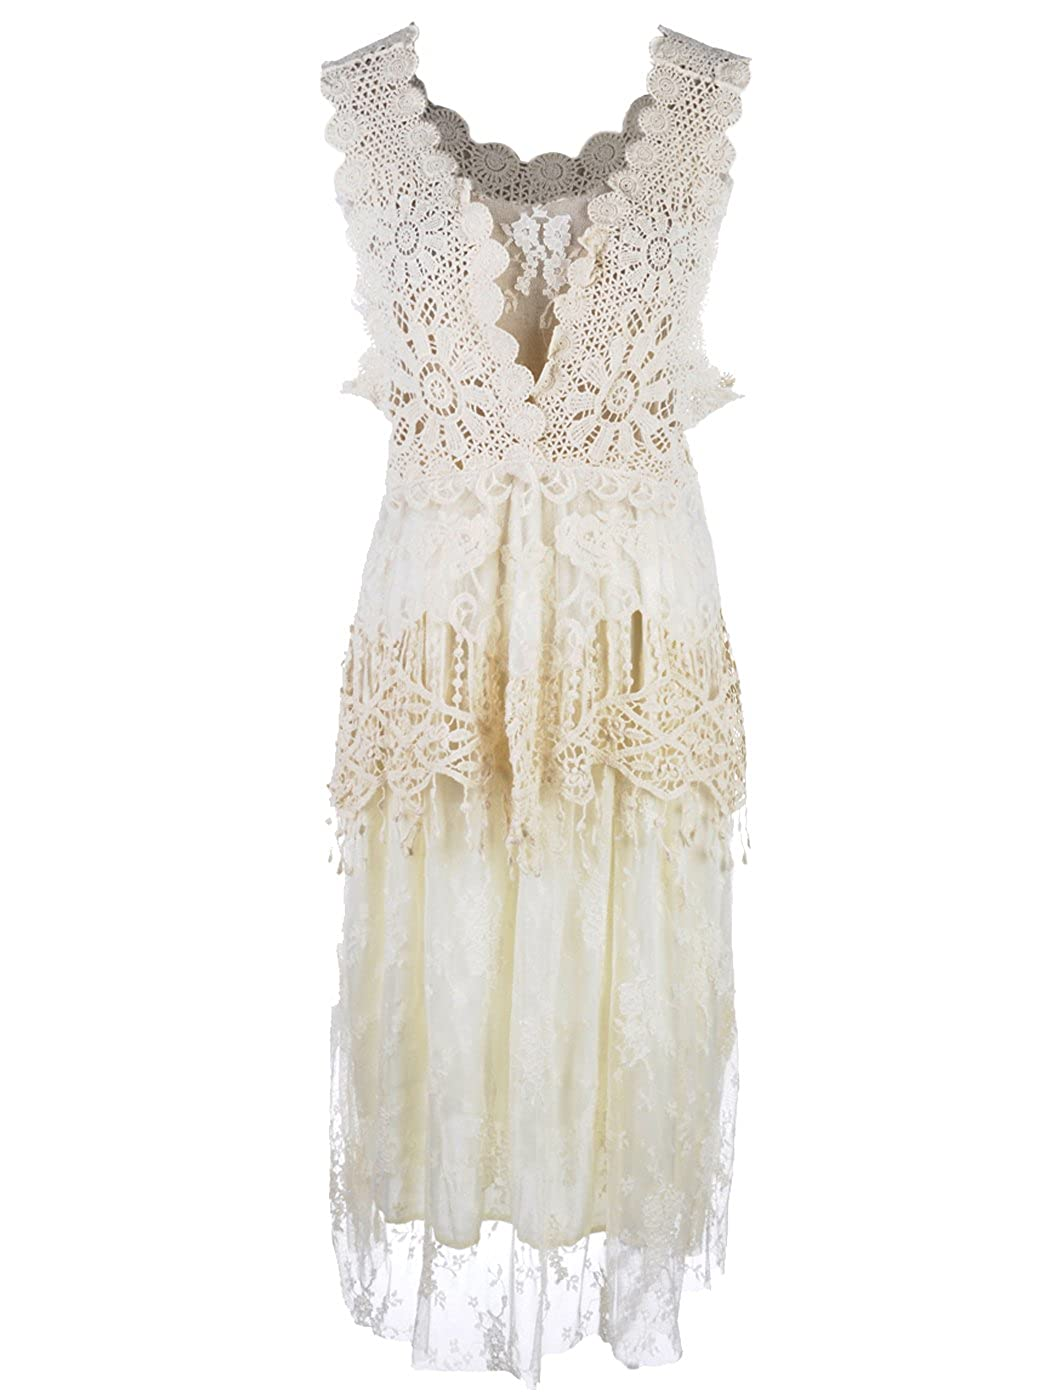 Flapper Costumes, Flapper Girl Costume Anna-Kaci Womens Vintage Granny Influence Embroidery Detail Lace Ruffle Dress $47.90 AT vintagedancer.com